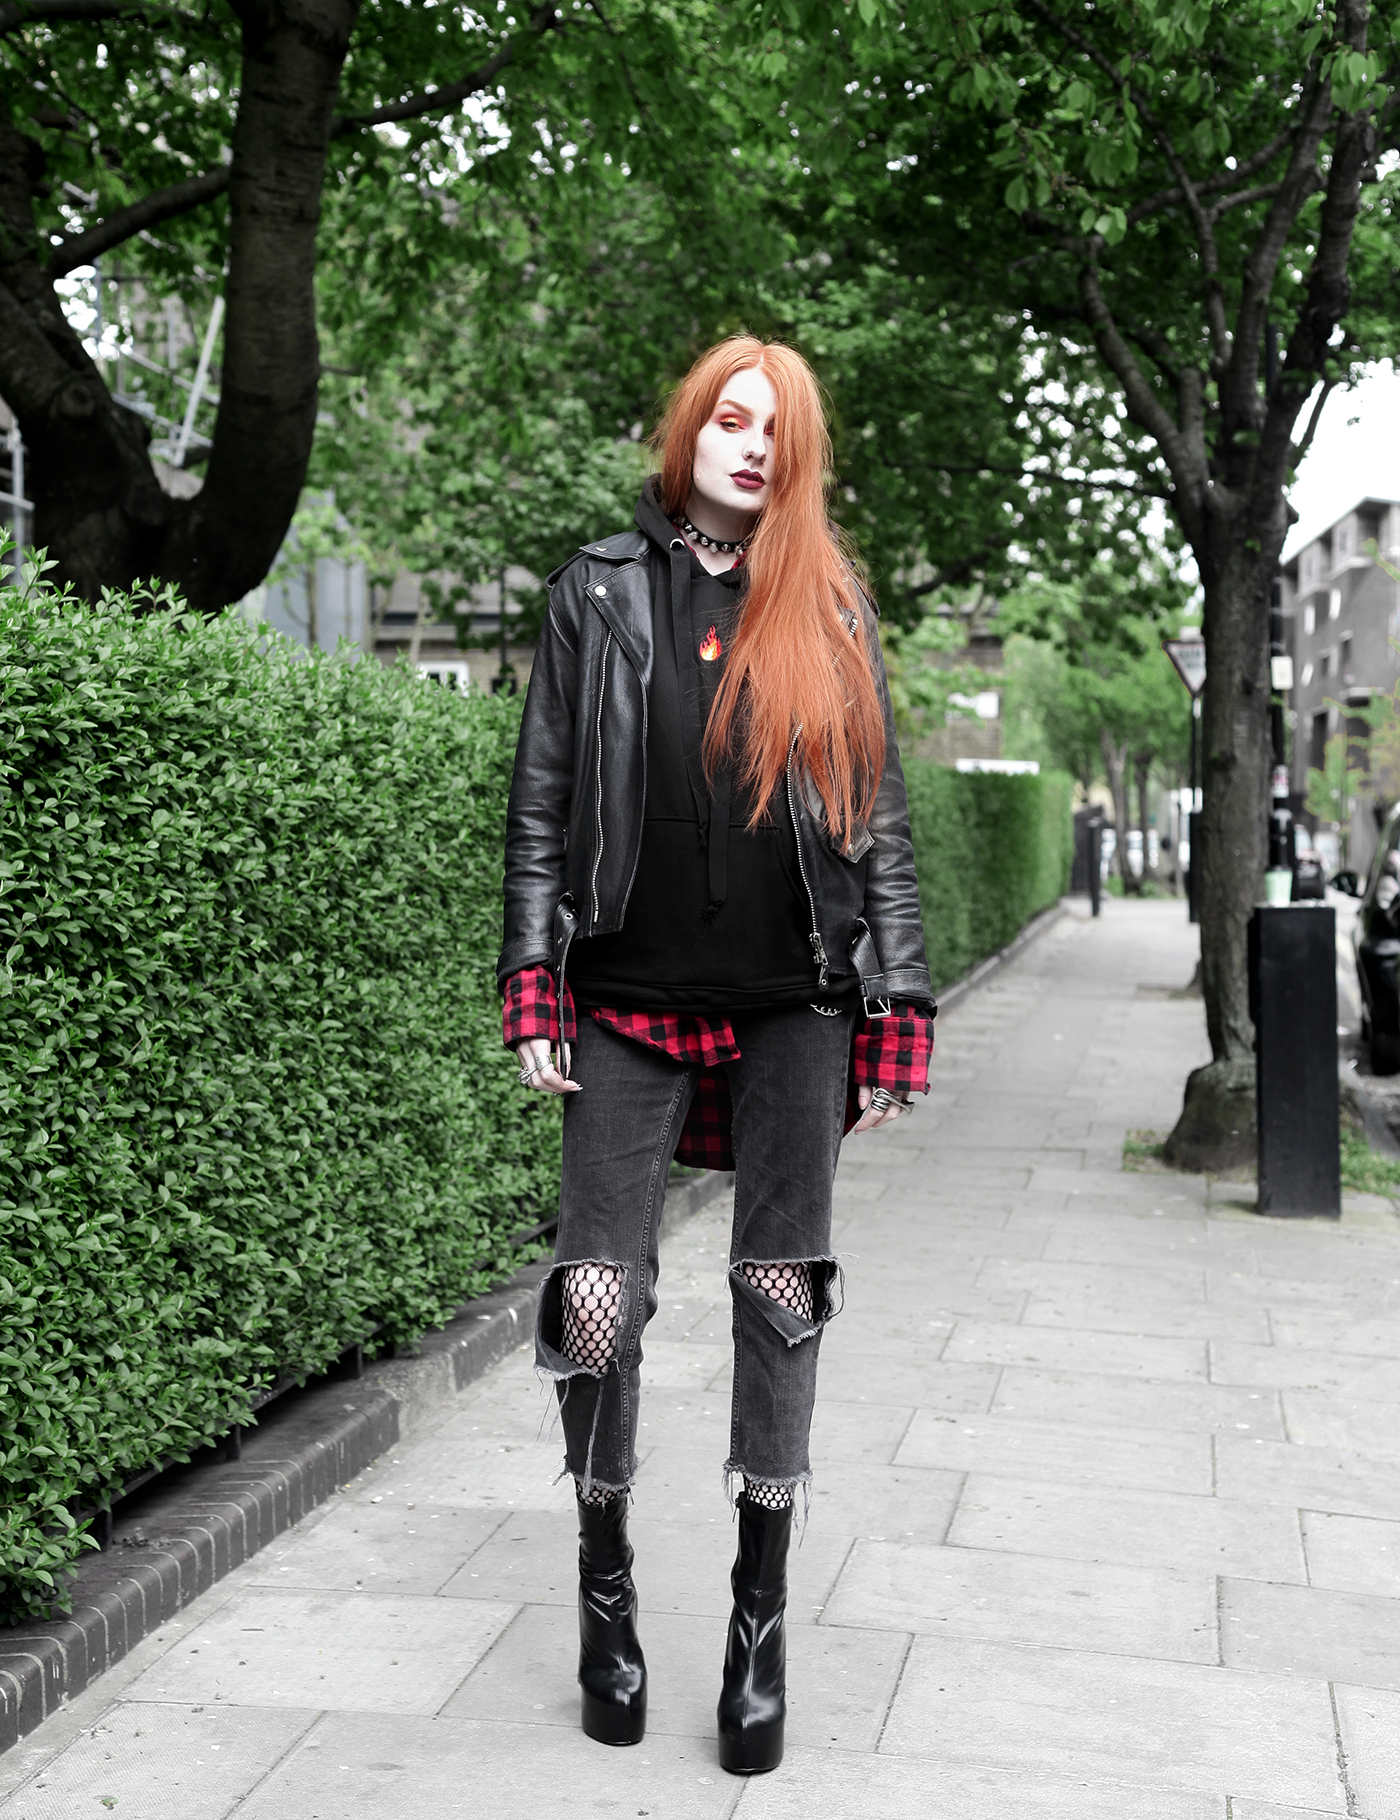 Dressed Up Casual - Olivia Emily wears Adolescent Clothing Fire Emoji Hoodie, Red Plaid Shirt, Asos Ripped Jeans, and Public Desire Platform Boots